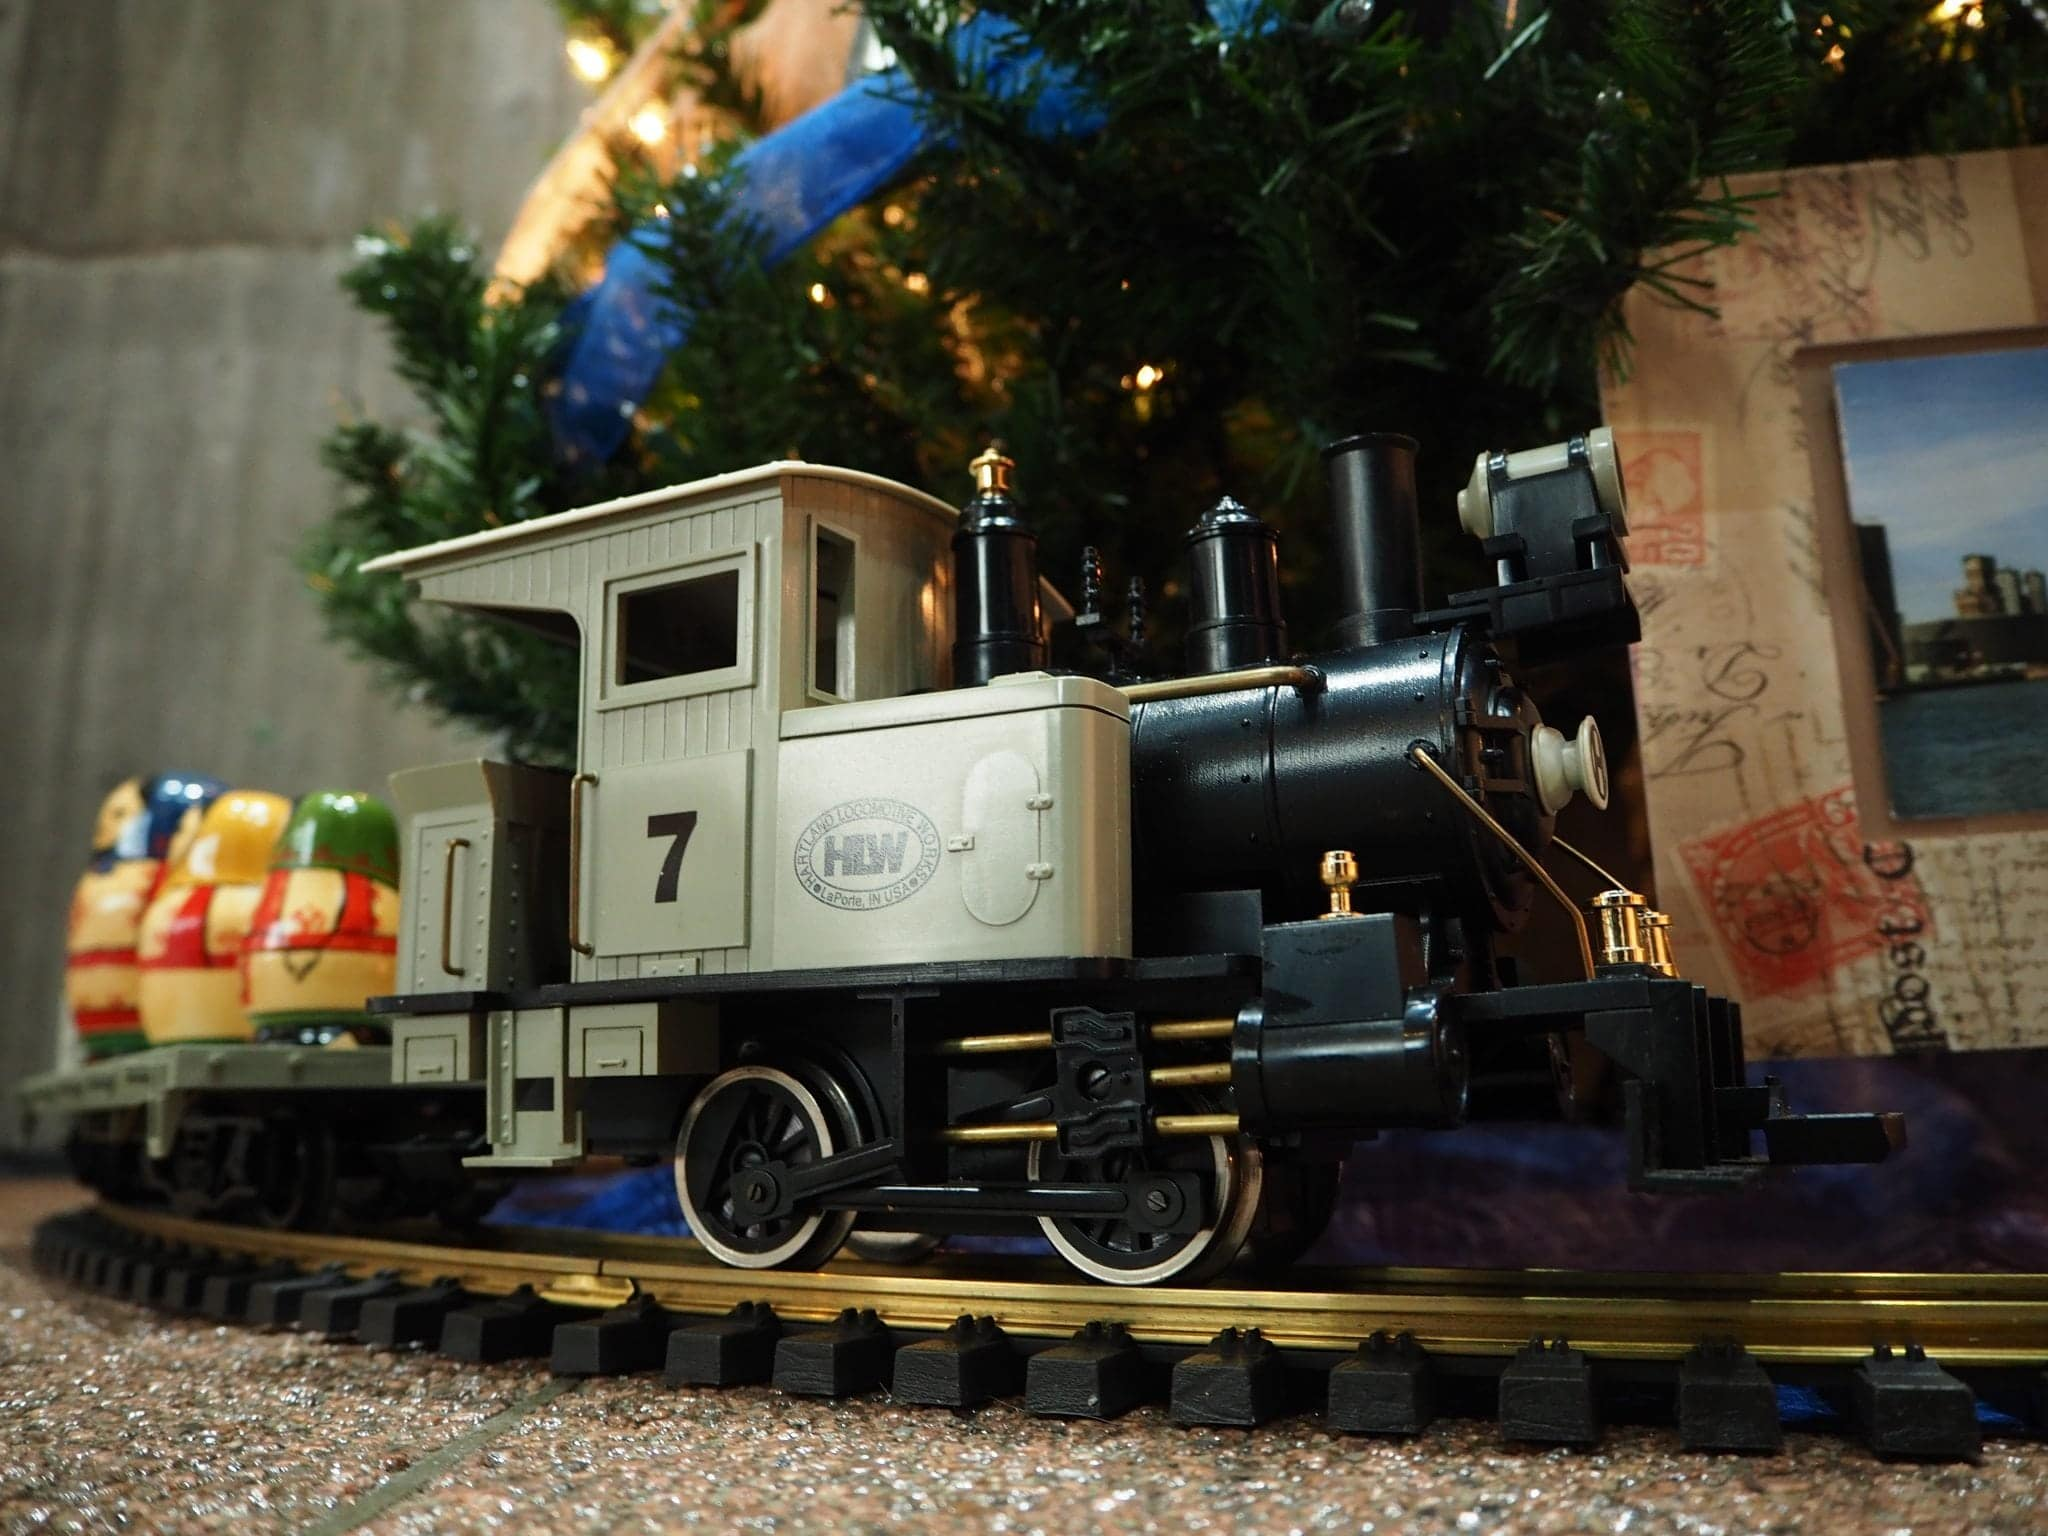 Train set at Festival of Trees